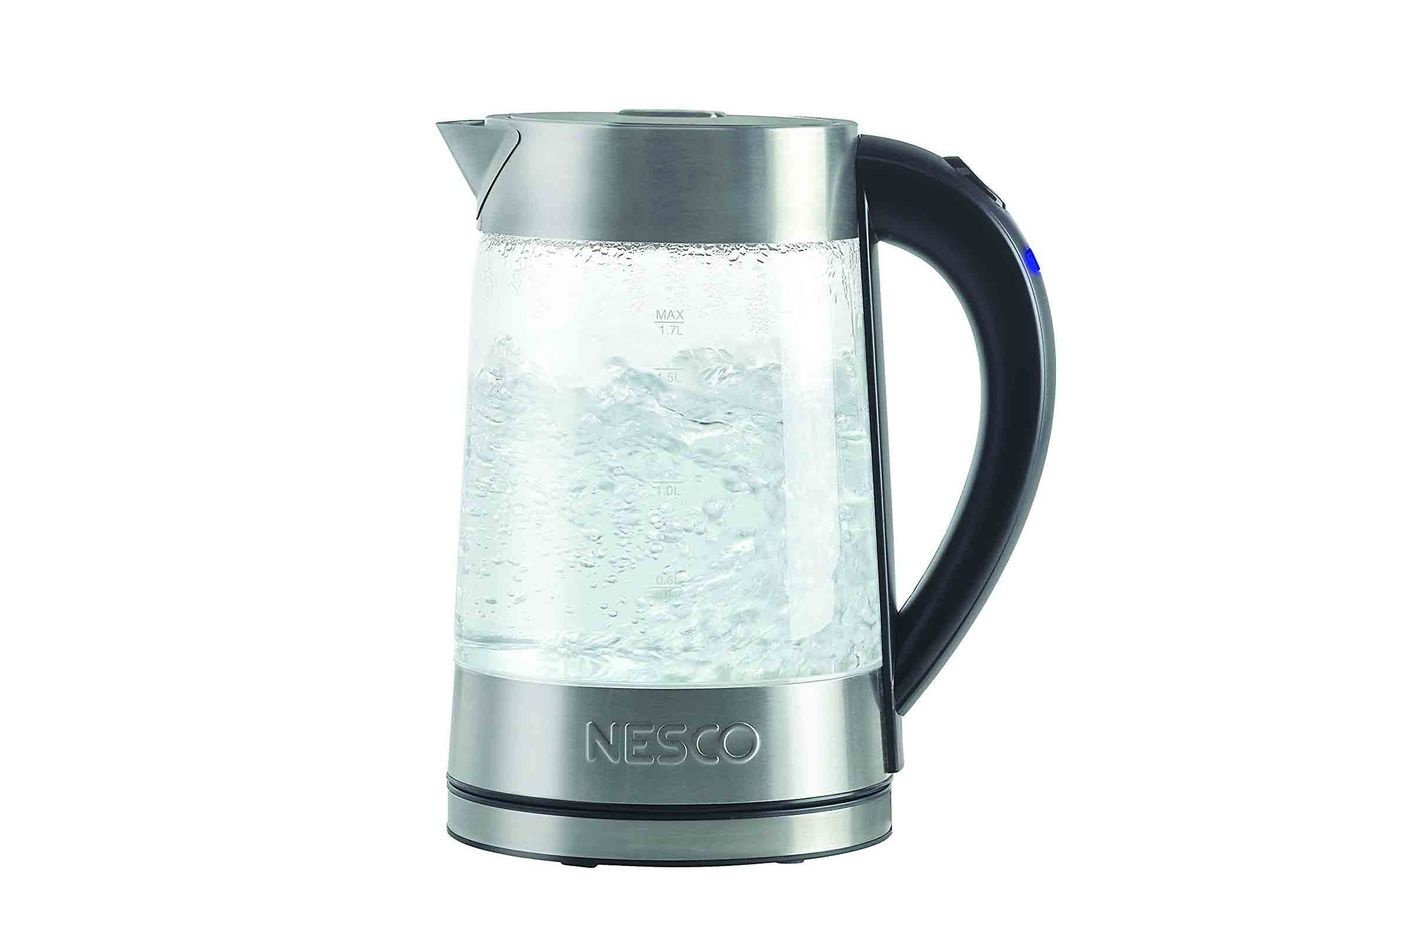 Nesco Electric Gas Water Kettle